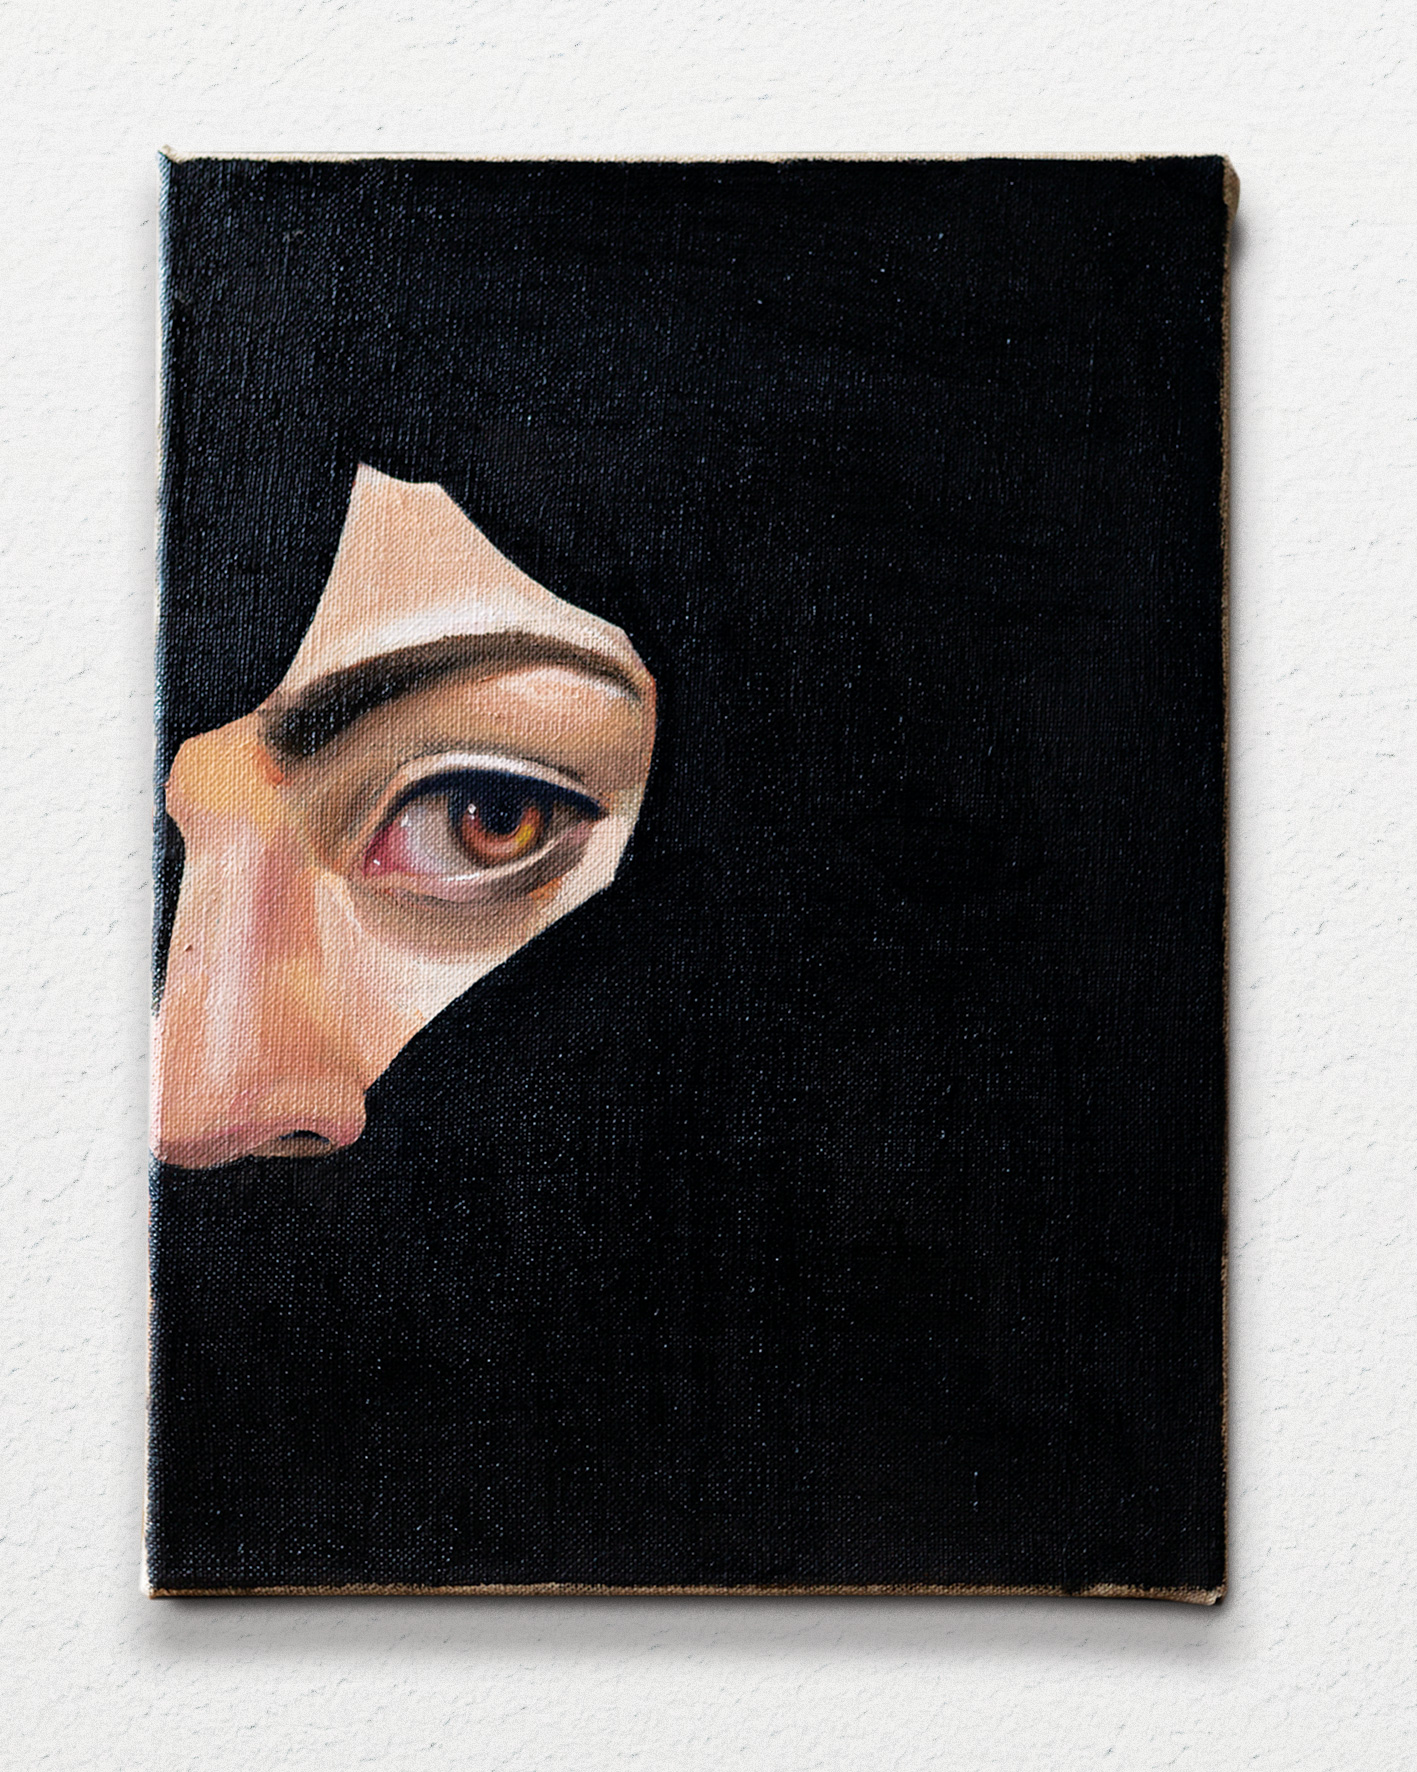 Black diptych II, 32x24cm, oil on linen